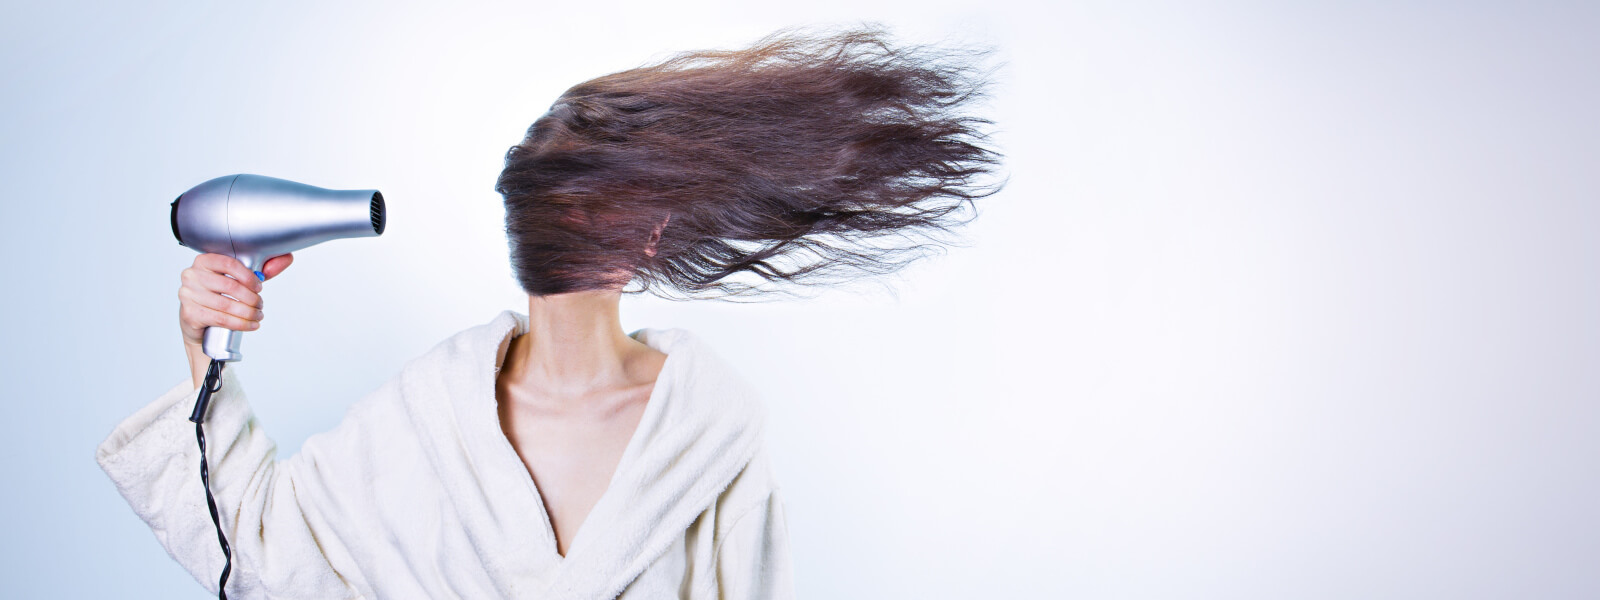 girls hair blowing in the wind self care increase productivity and prevent burnout